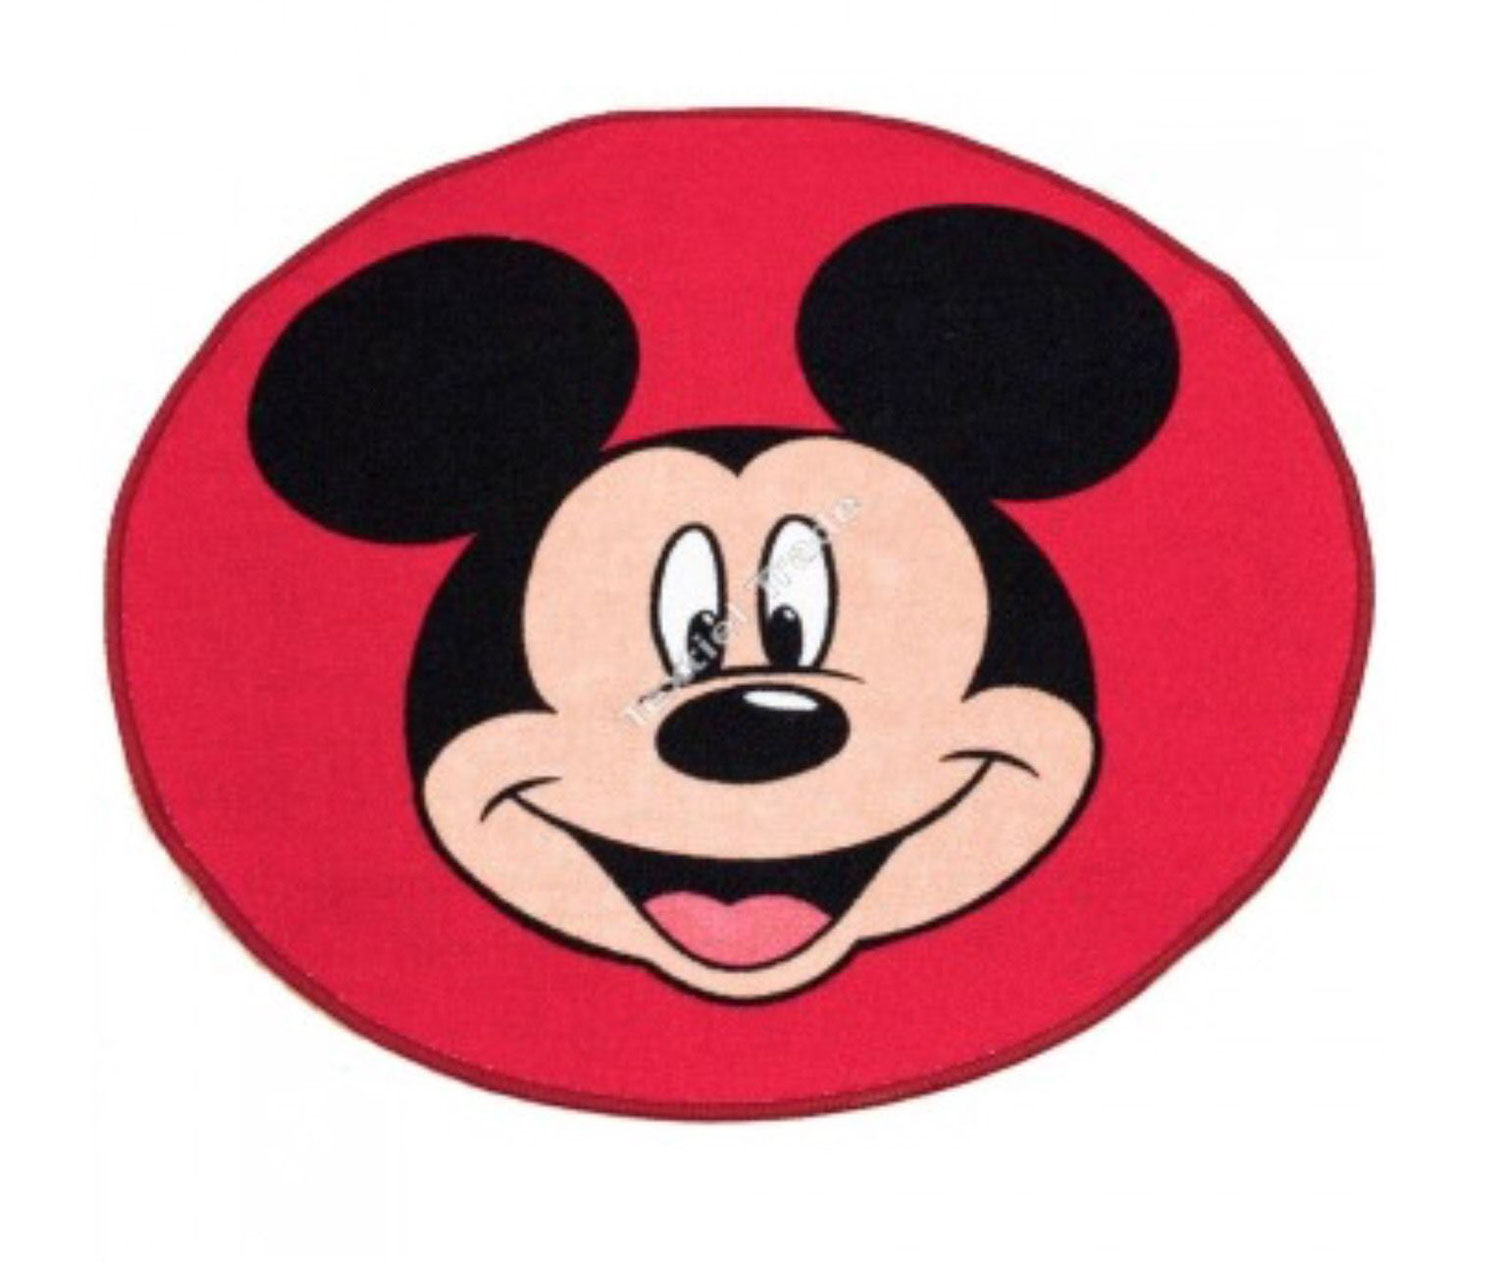 Mickey Mouse Teppich Teppich Mickey Maus